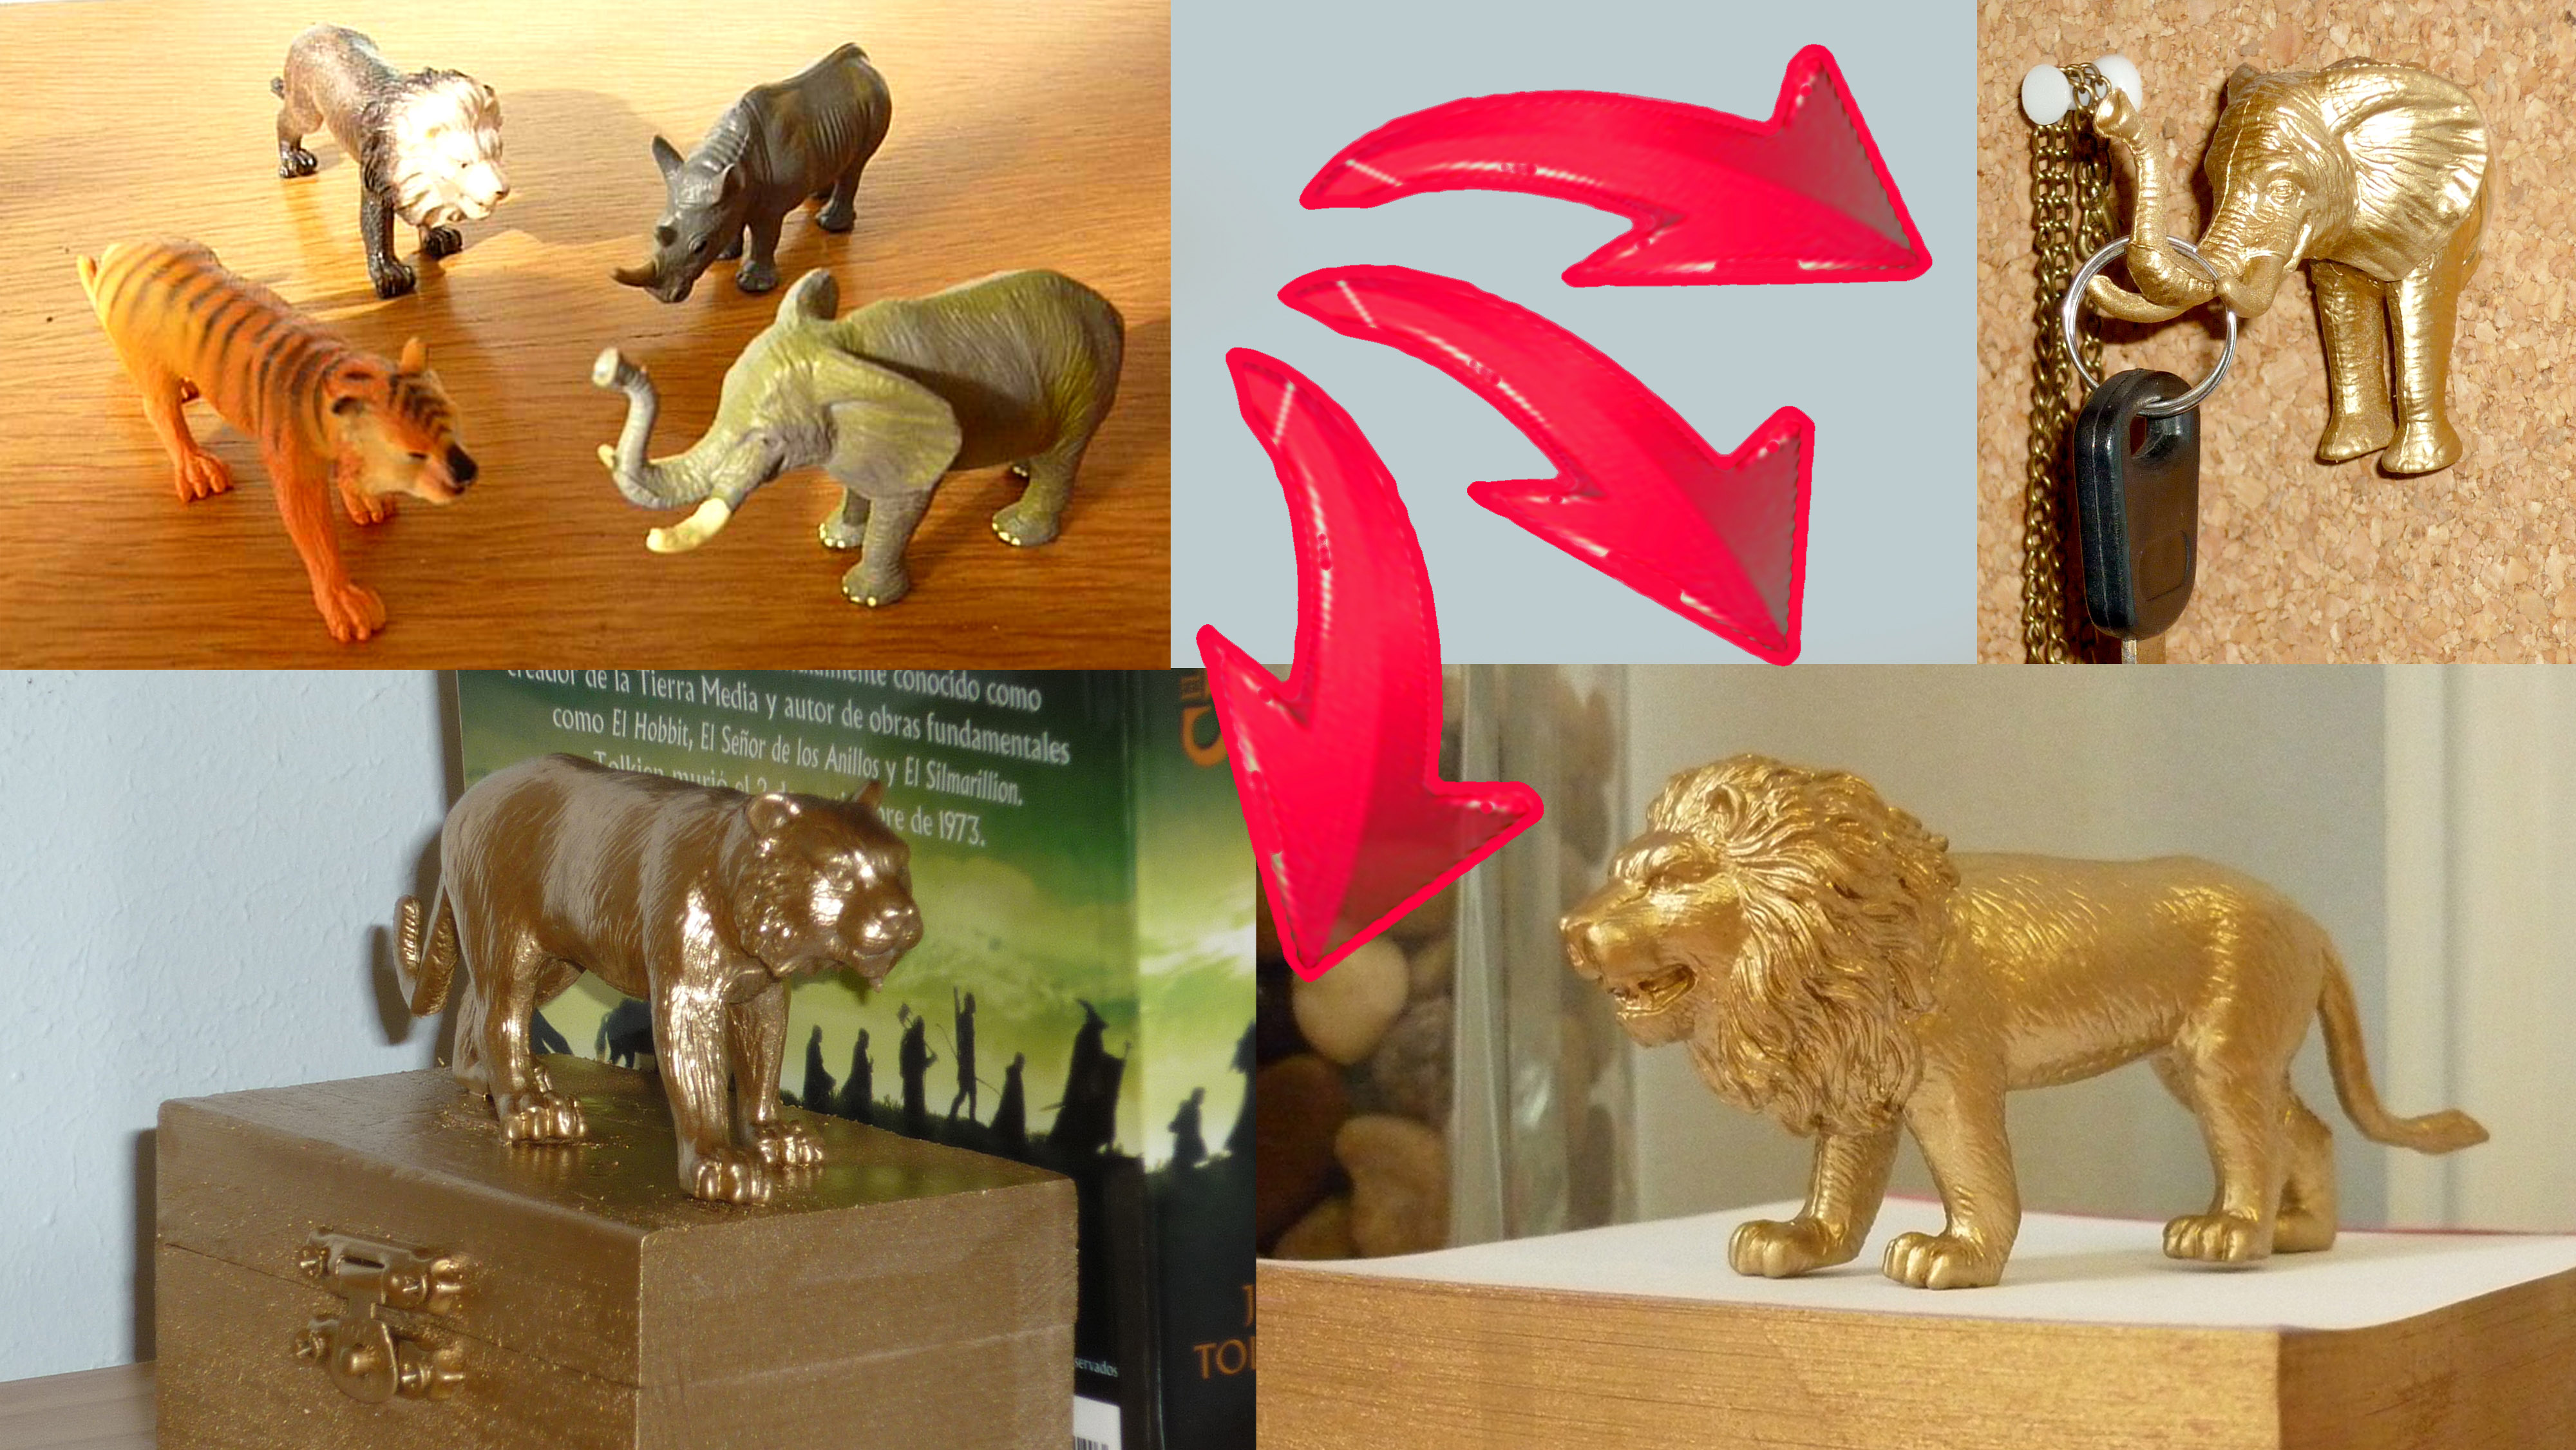 DIY room decor - 3 ideas to upcycle plastic animal toys with spray paint!